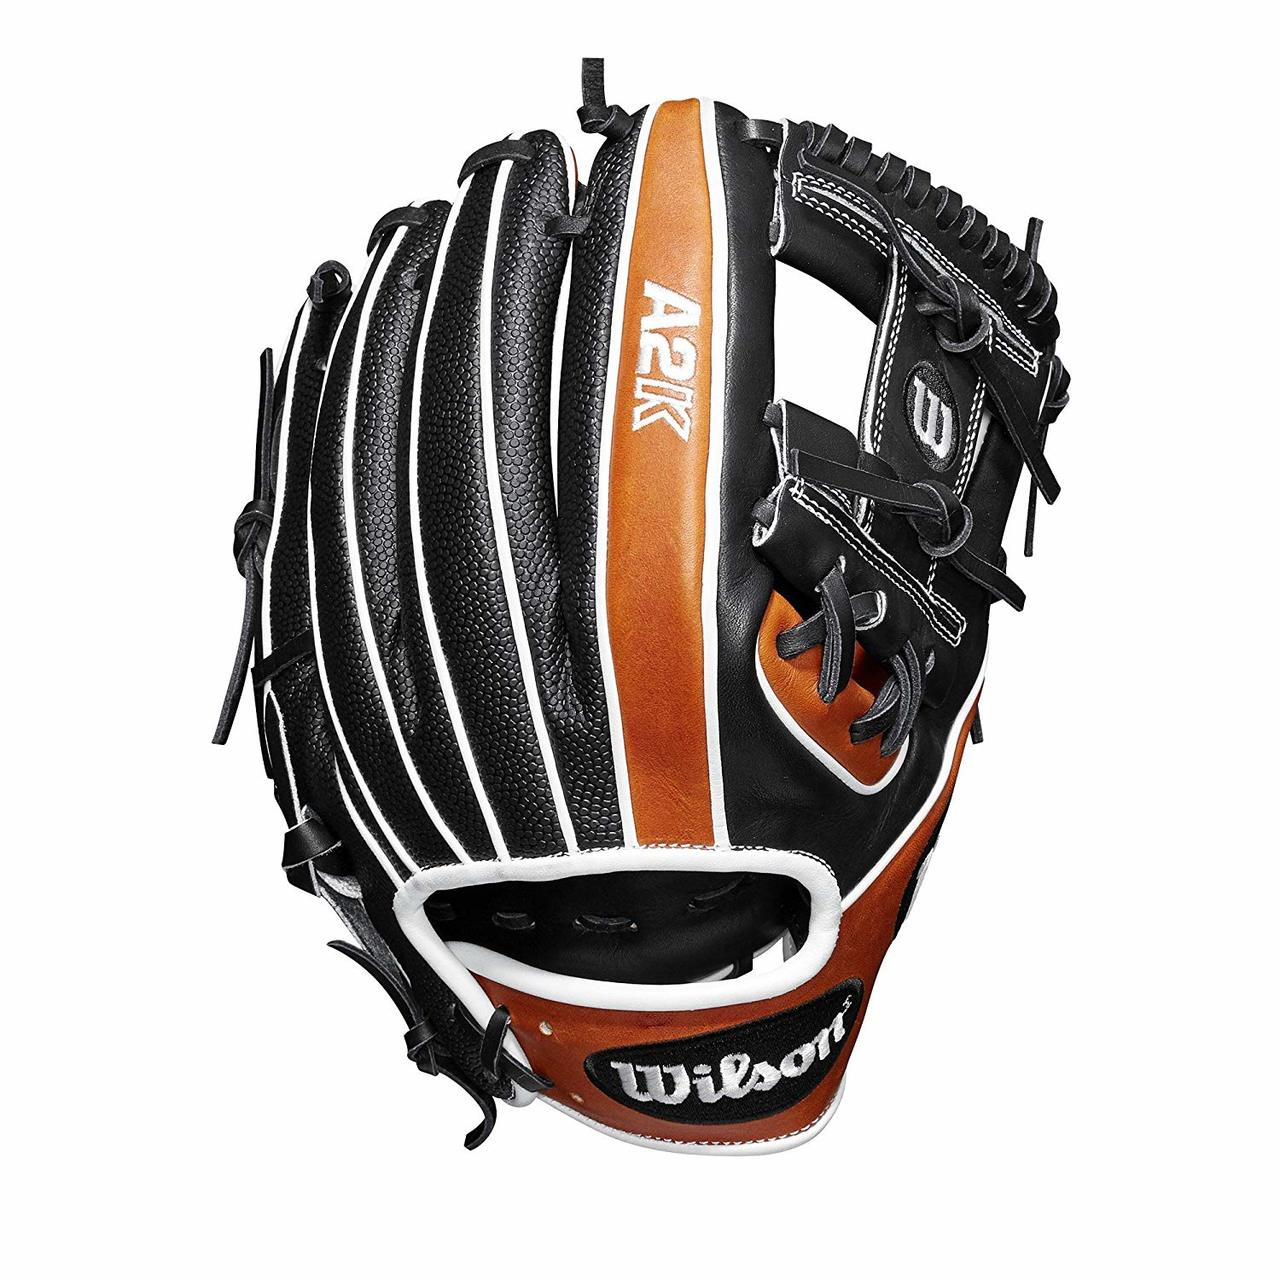 wilson-2019-a2k-baseball-glove-11-5-right-hand-throw WTA2KRB191786SS-RightHandThrow  887768701819 Infield model; H-Web Black SuperSkin twice as strong as regular leather